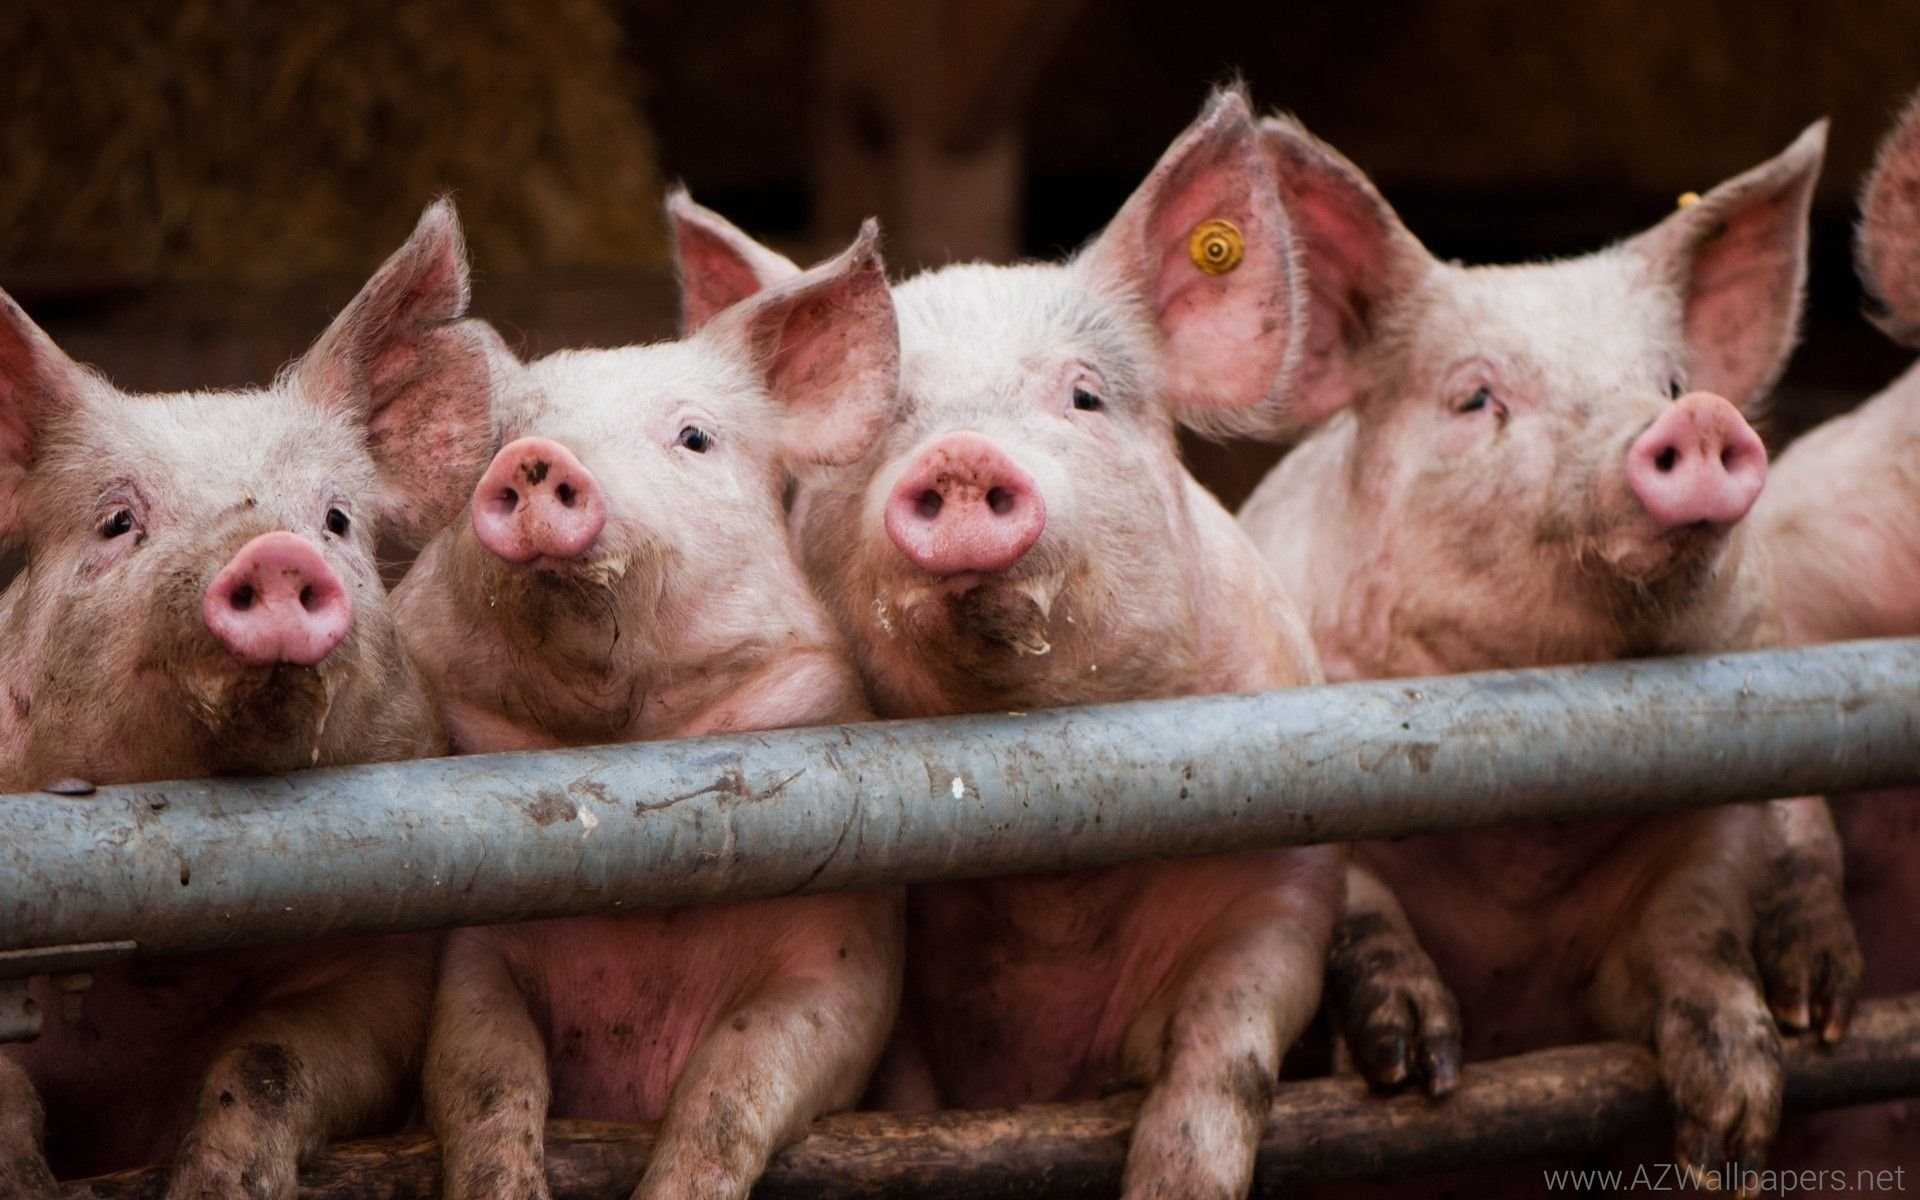 Pigs Photo Wallpapers, Pictures With Pigs